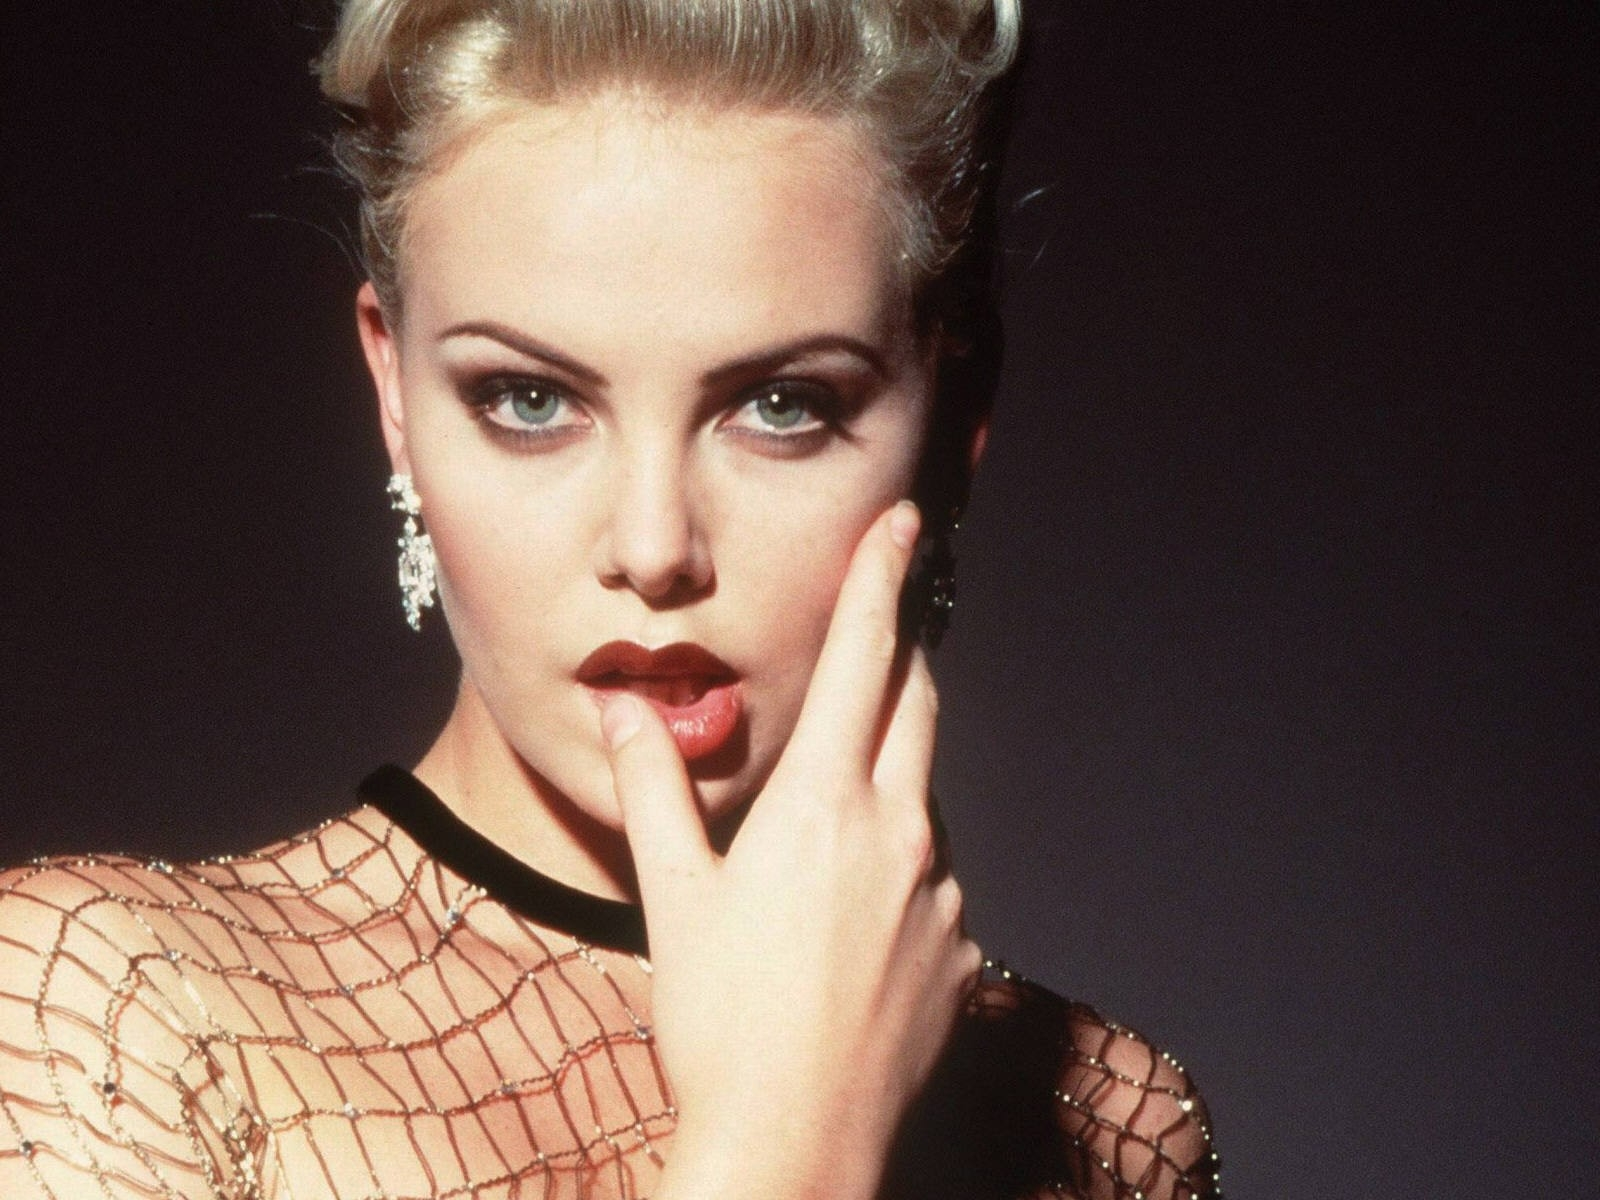 Wallpaper di Charlize Theron in versione sensuale